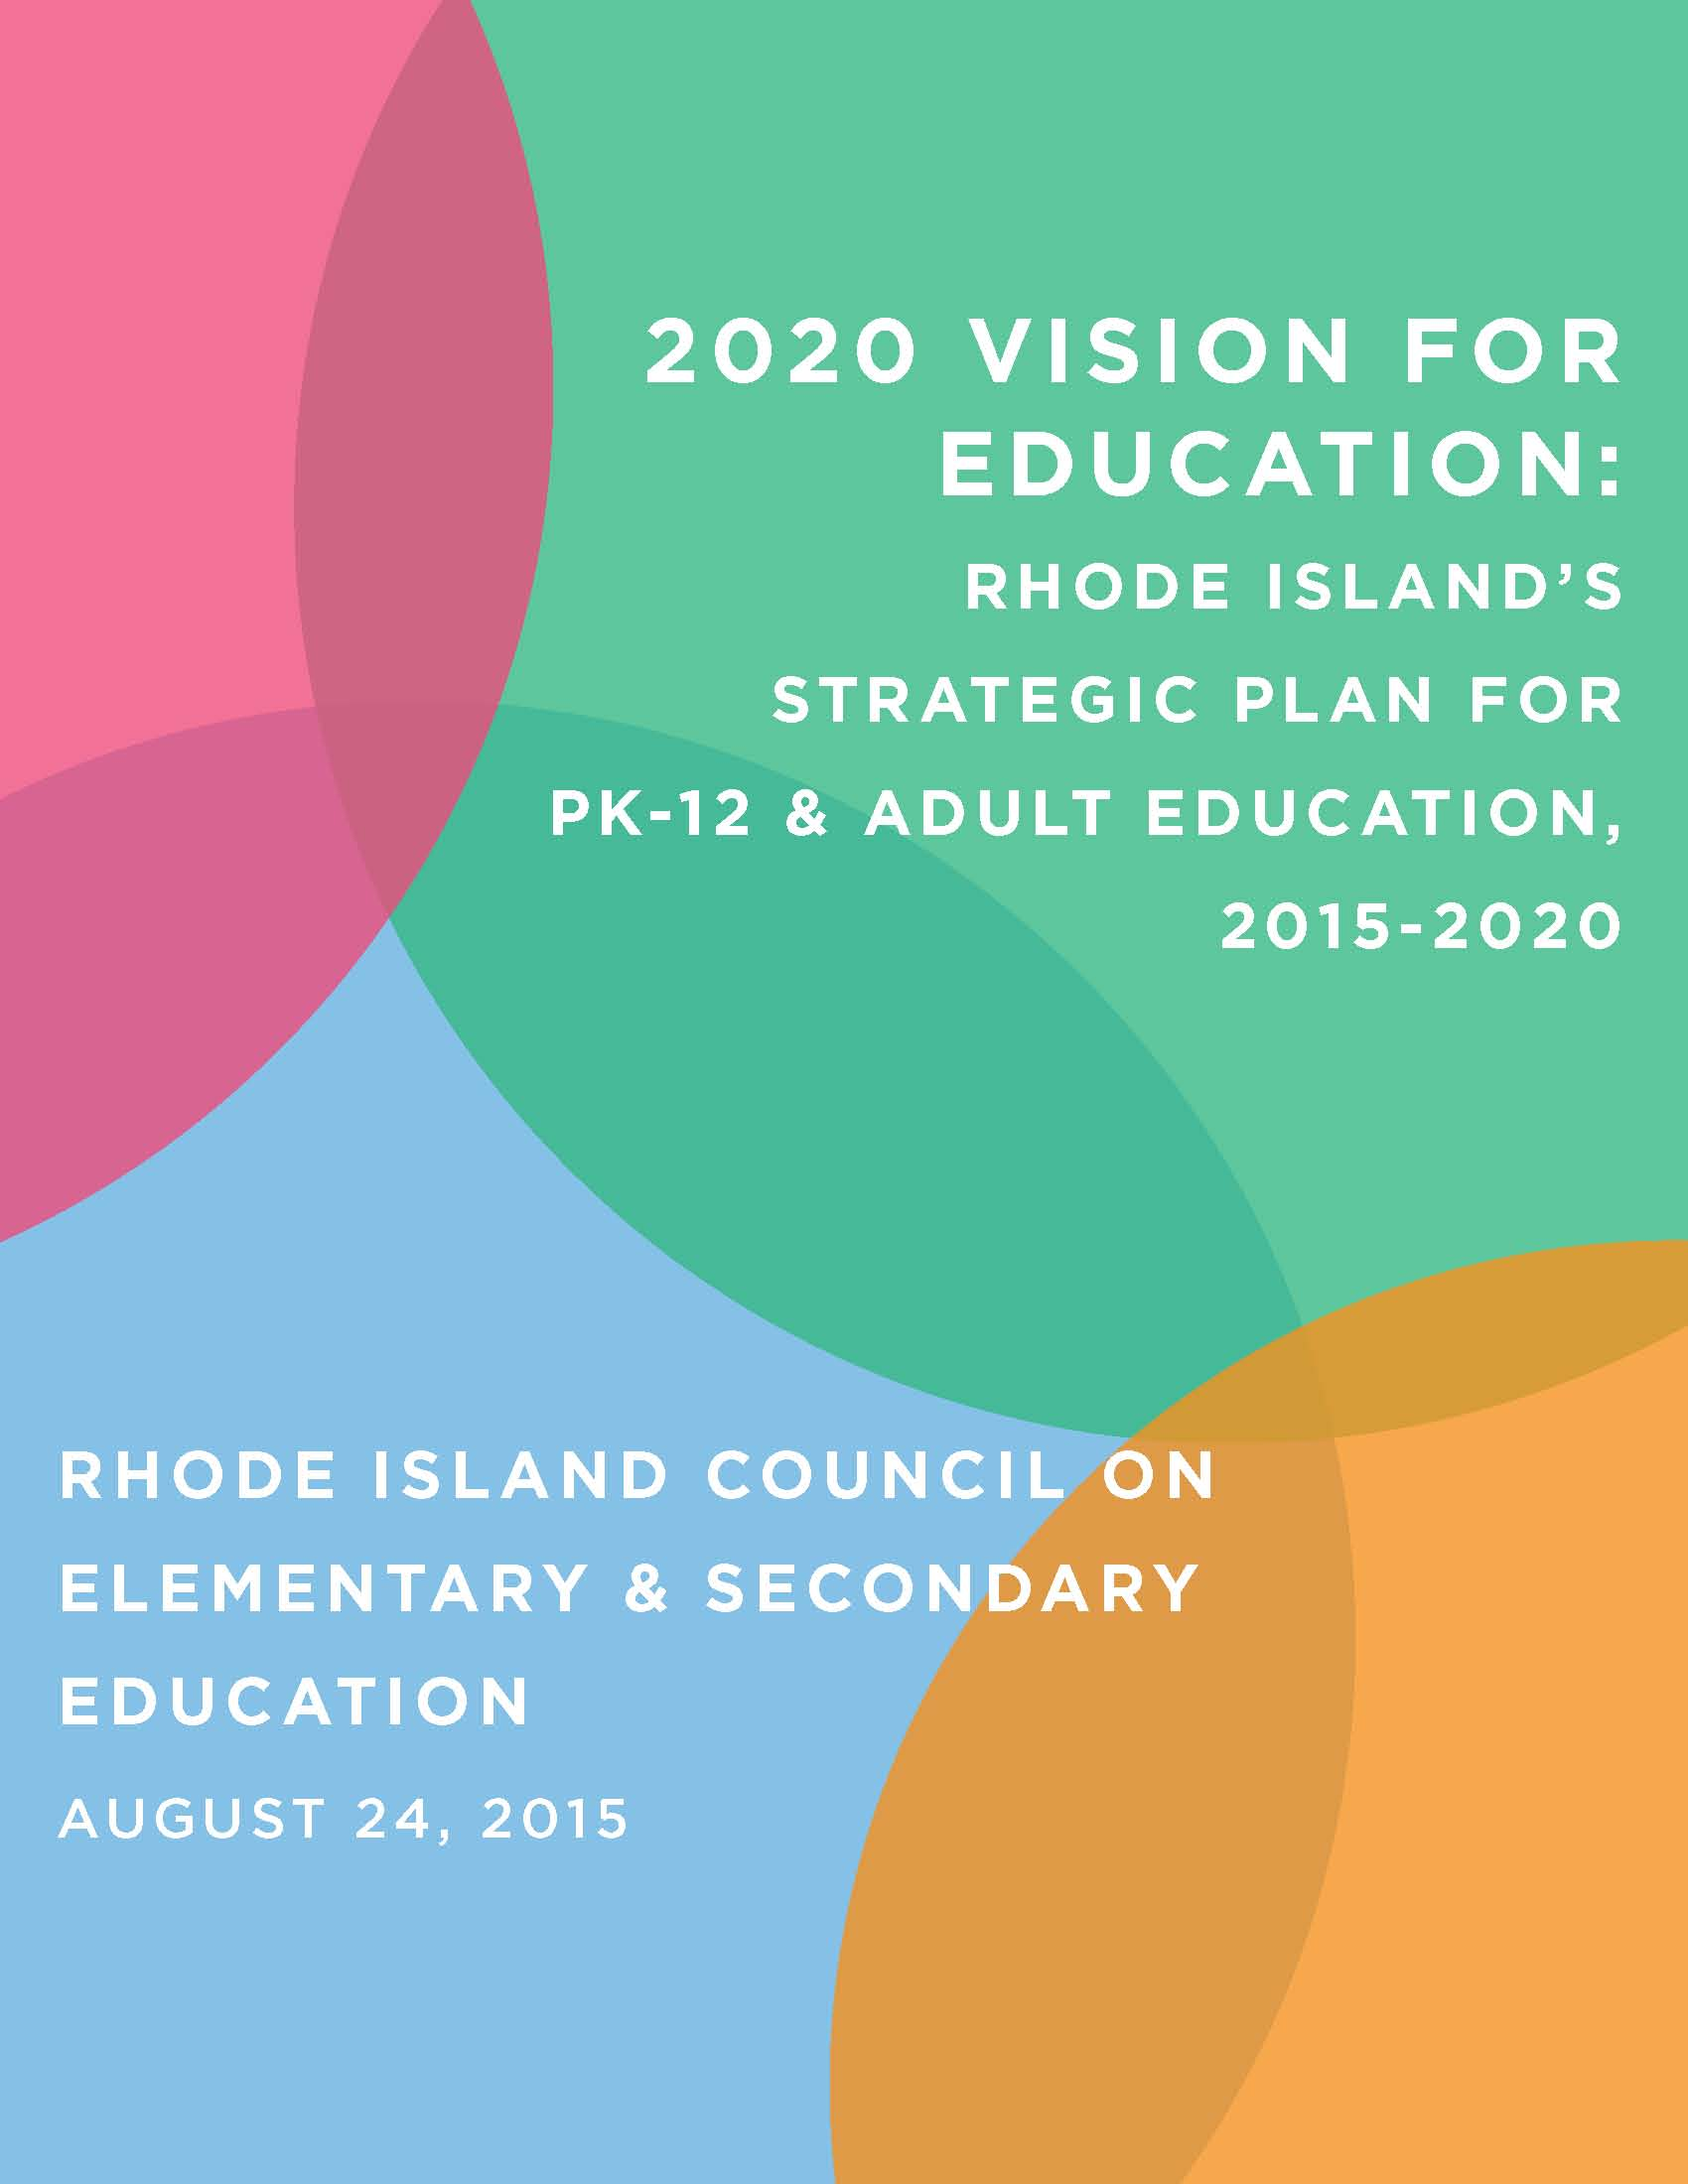 graphic showing the cover of the Rhode Island strategic plan for education